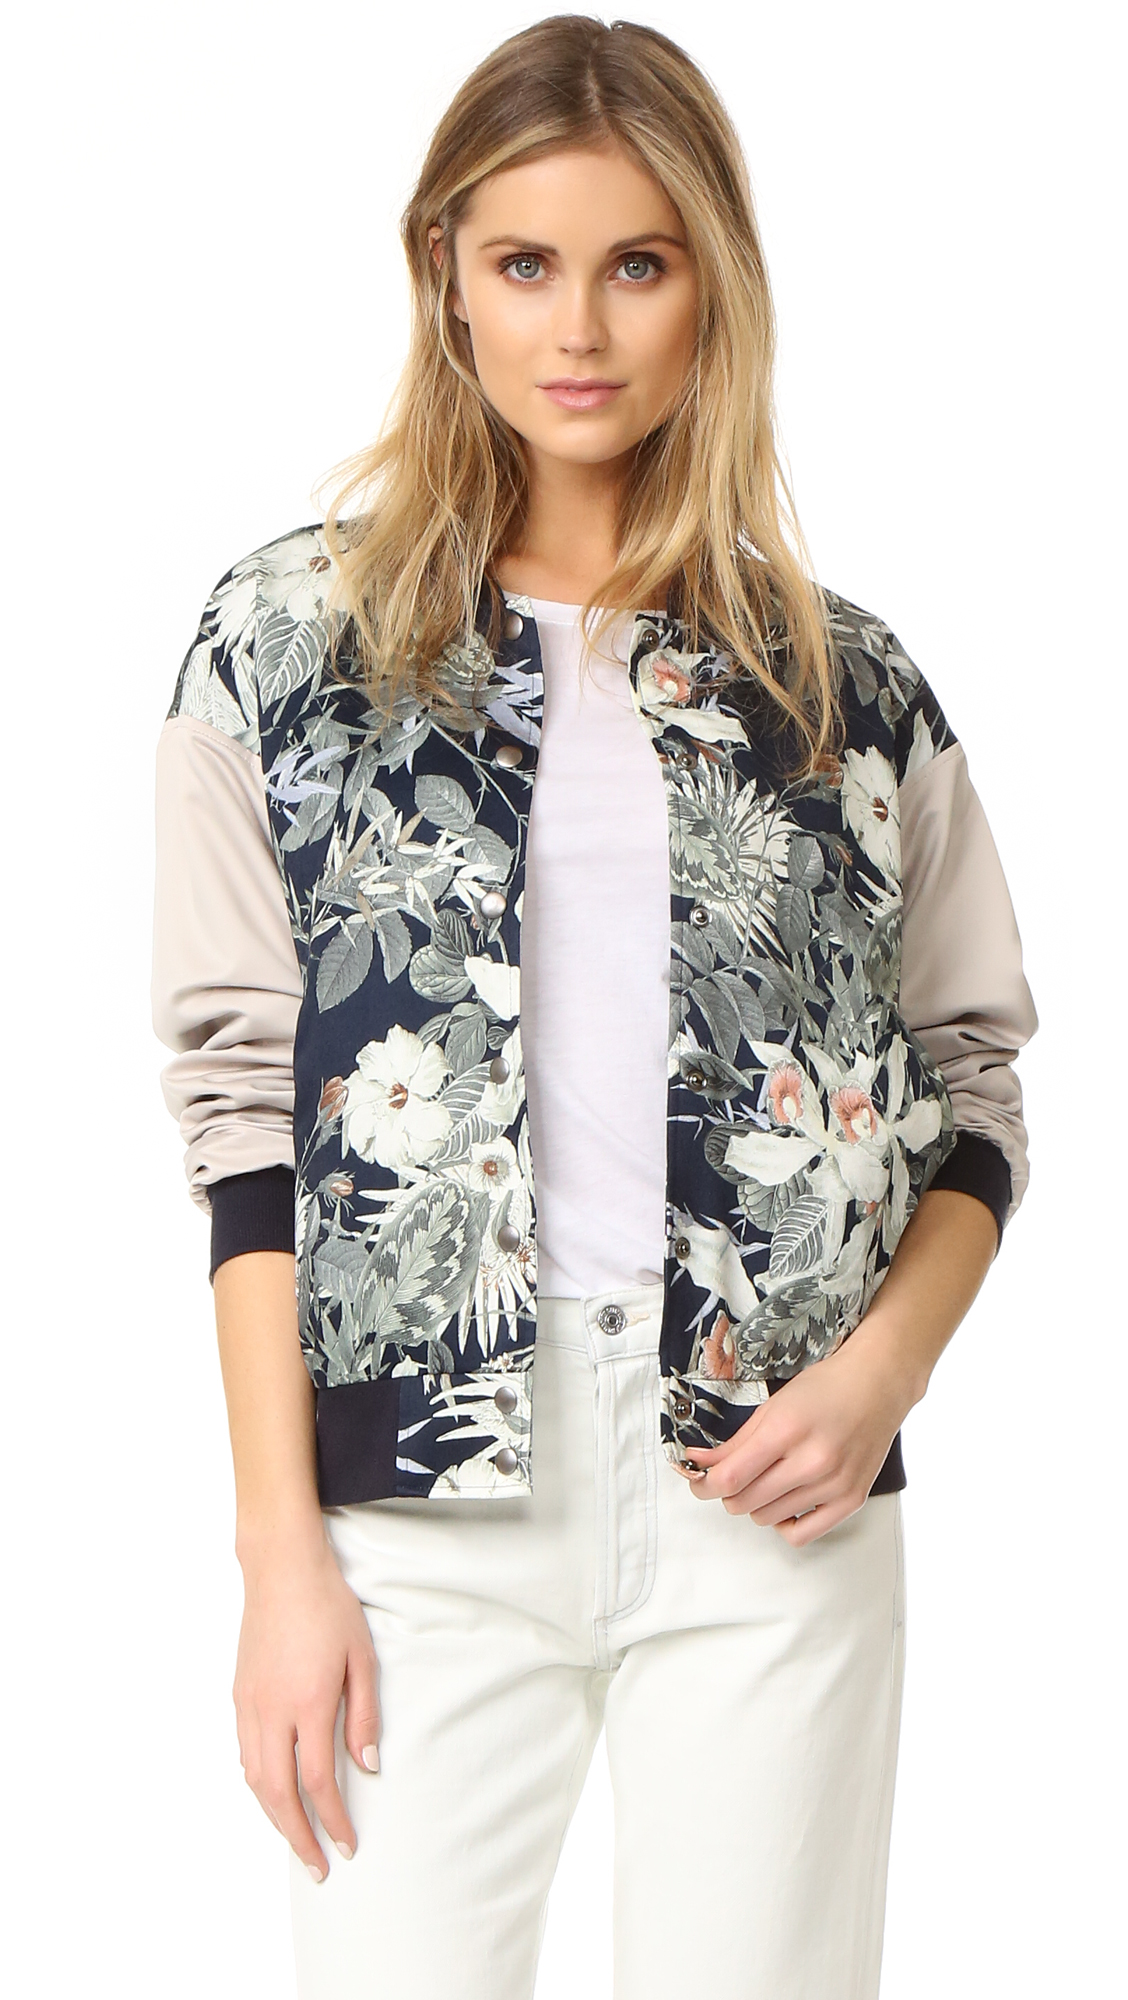 A satin James Jeans bomber jacket with a floral print and contrast sleeves. Snap placket and welt front pockets. Ribbed edges. Lined. Fabric: Satin. 100% polyester. Dry clean. Made in the USA. Measurements Length: 24.5in / 62cm, from